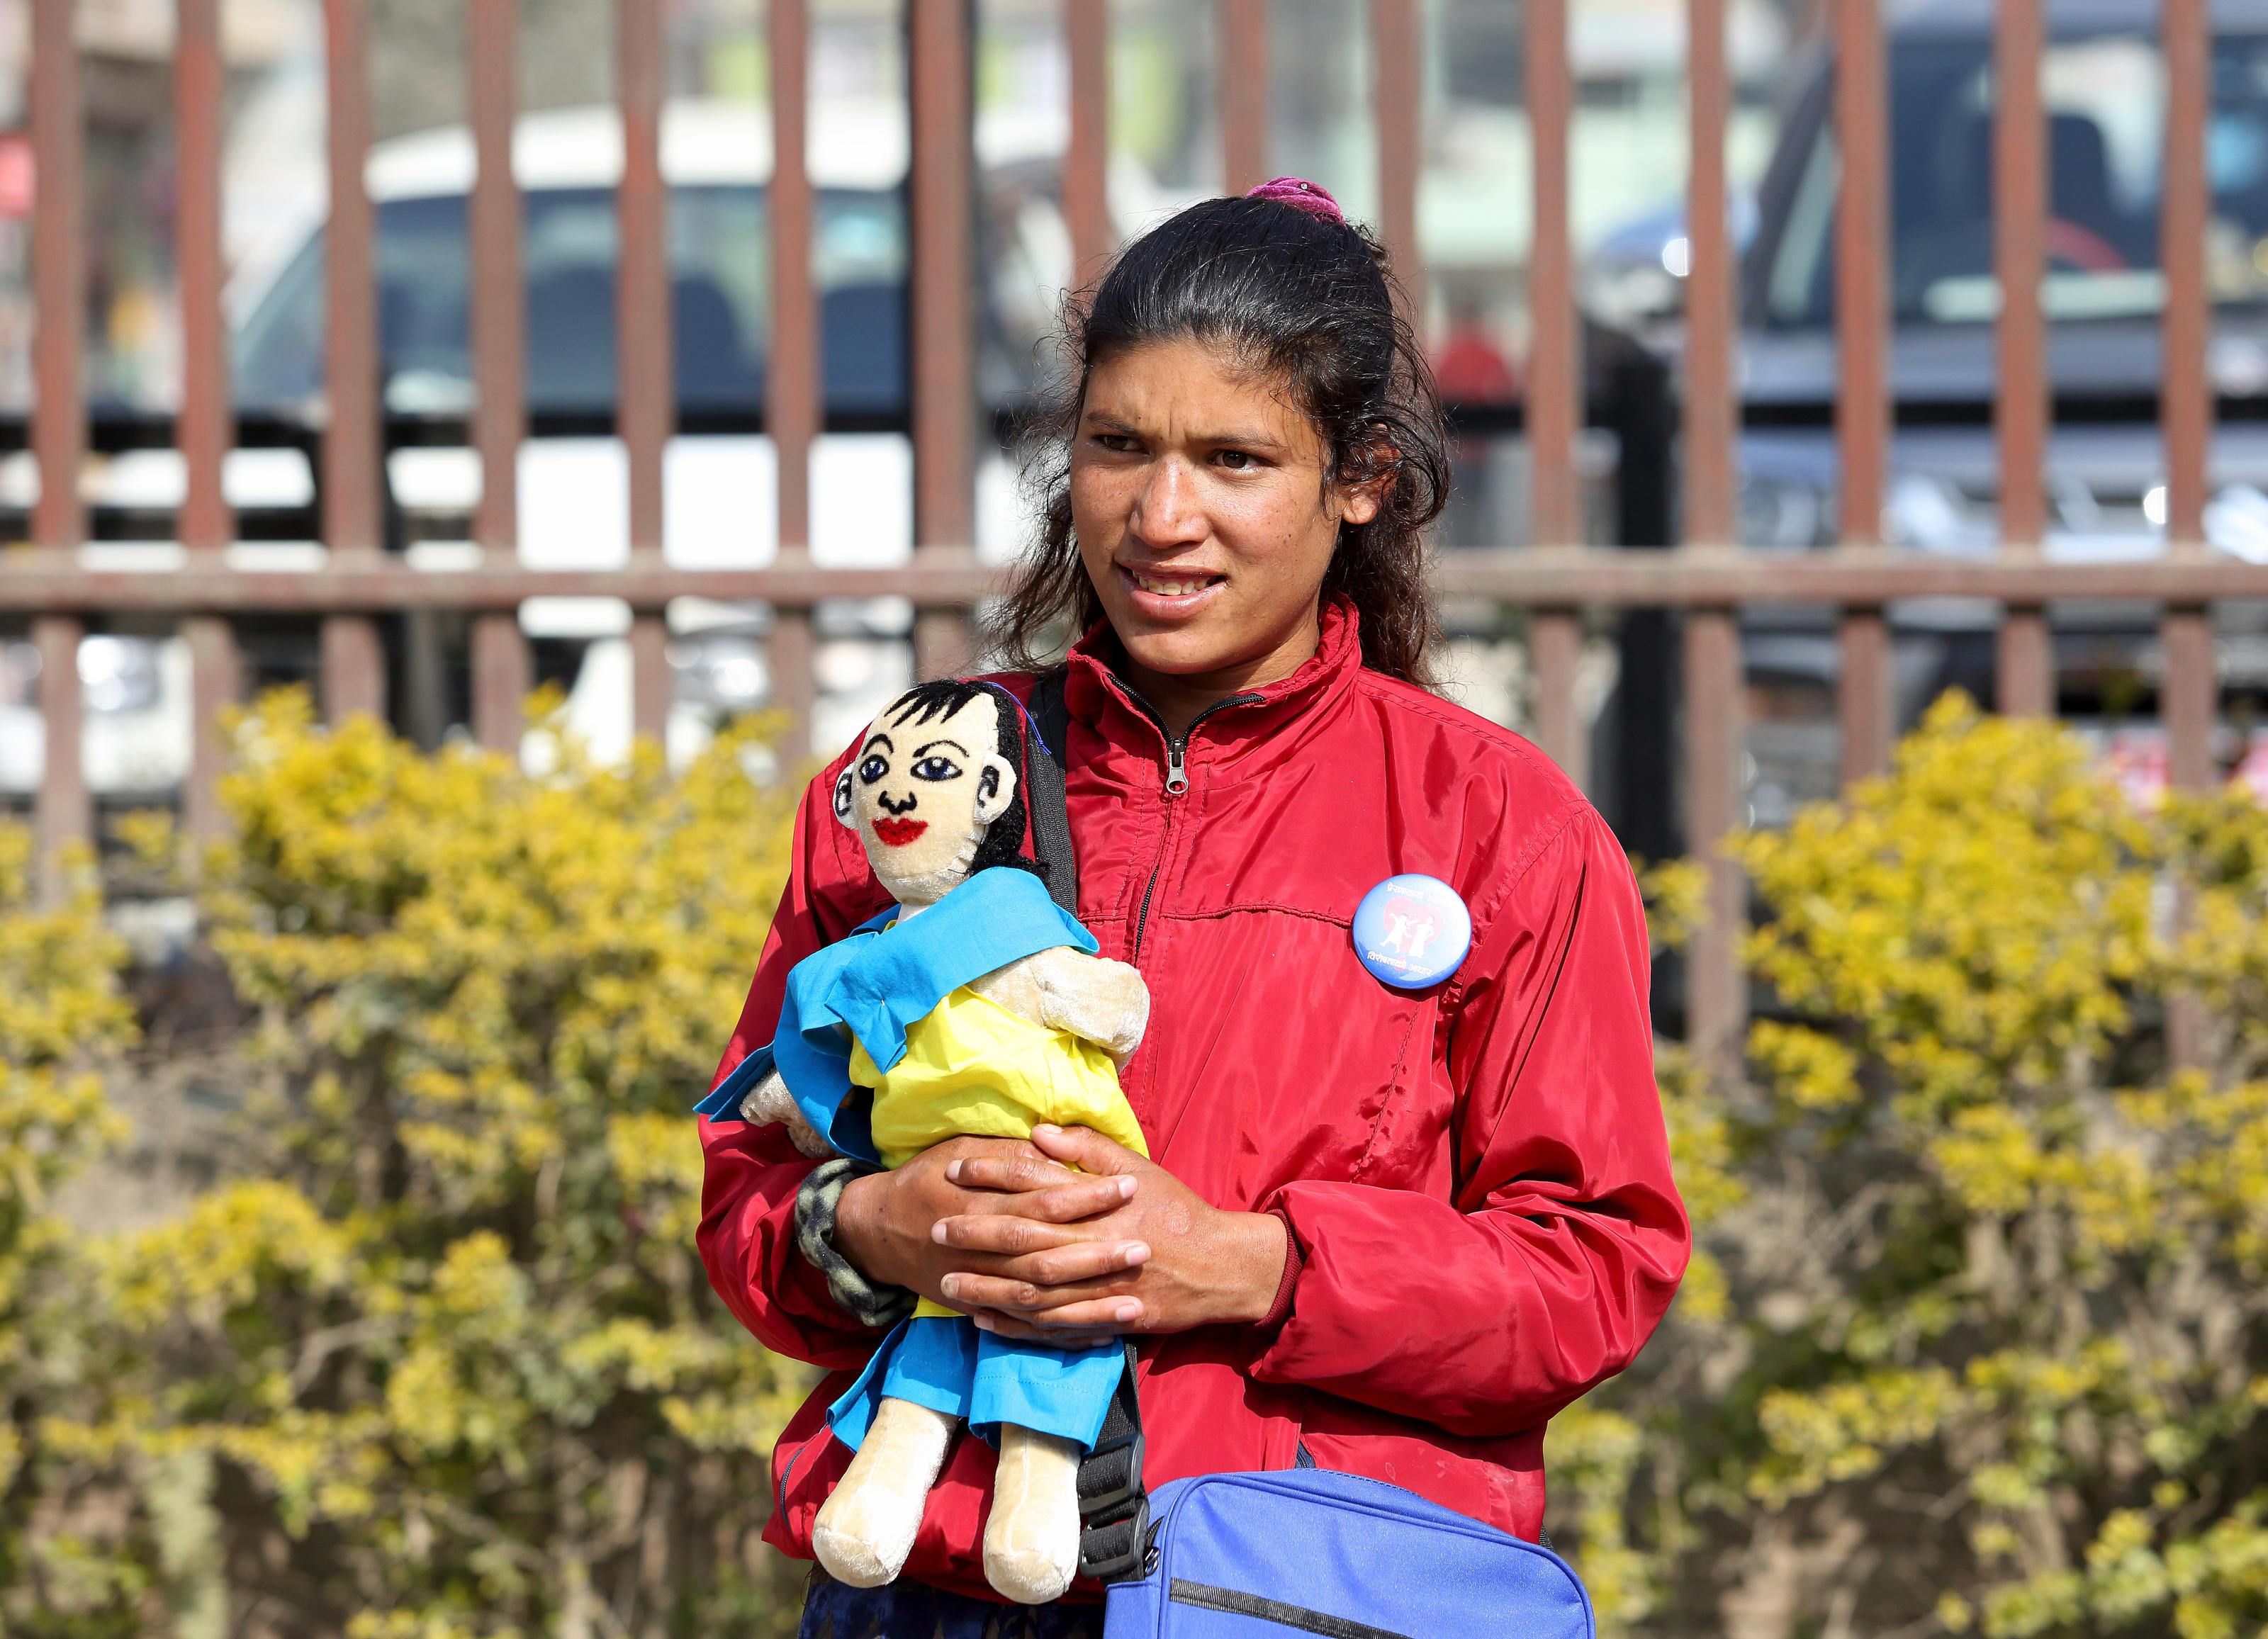 One of the young people who took part in the pilot campaign, carrying a 'Bishesta' doll, outside Banepa Muncipality office, Banepa, Nepal.